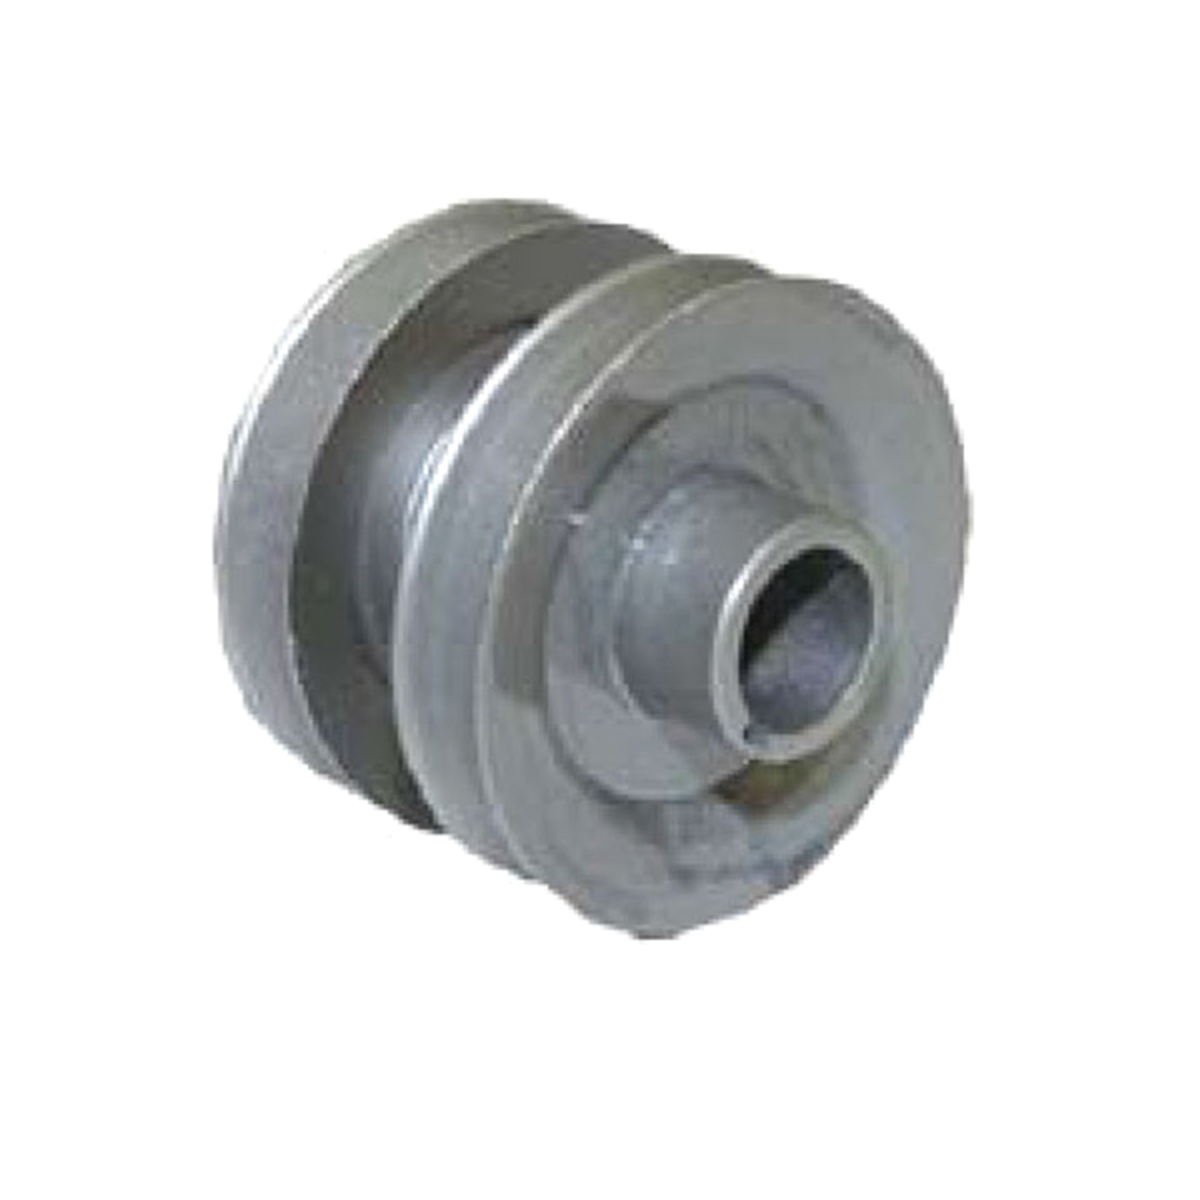 65216 Dixie Chopper Engine Pulley 42N 1.125